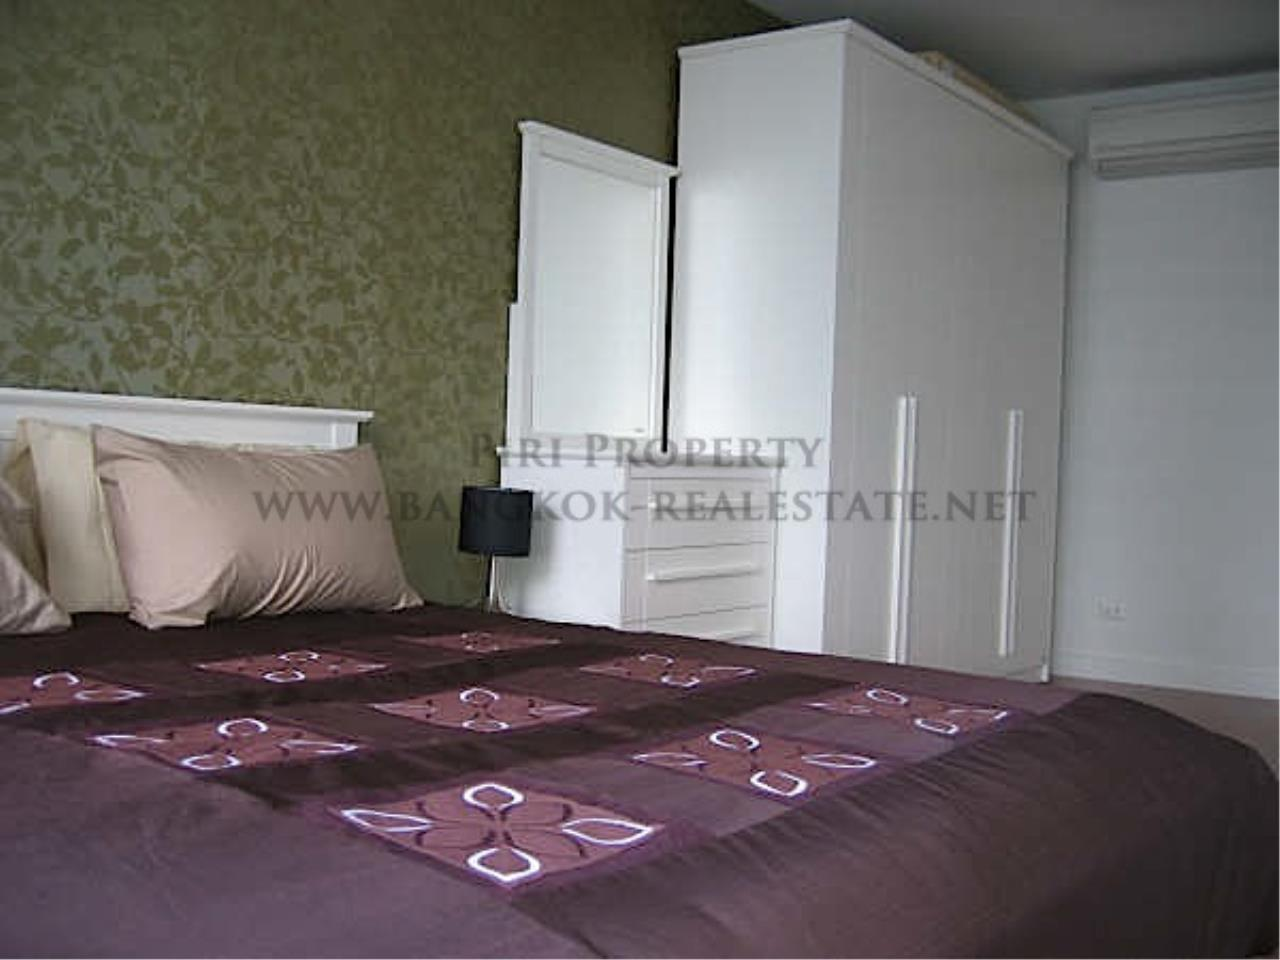 Piri Property Agency's Condo One X - Nicely furnished One Bedroom 1